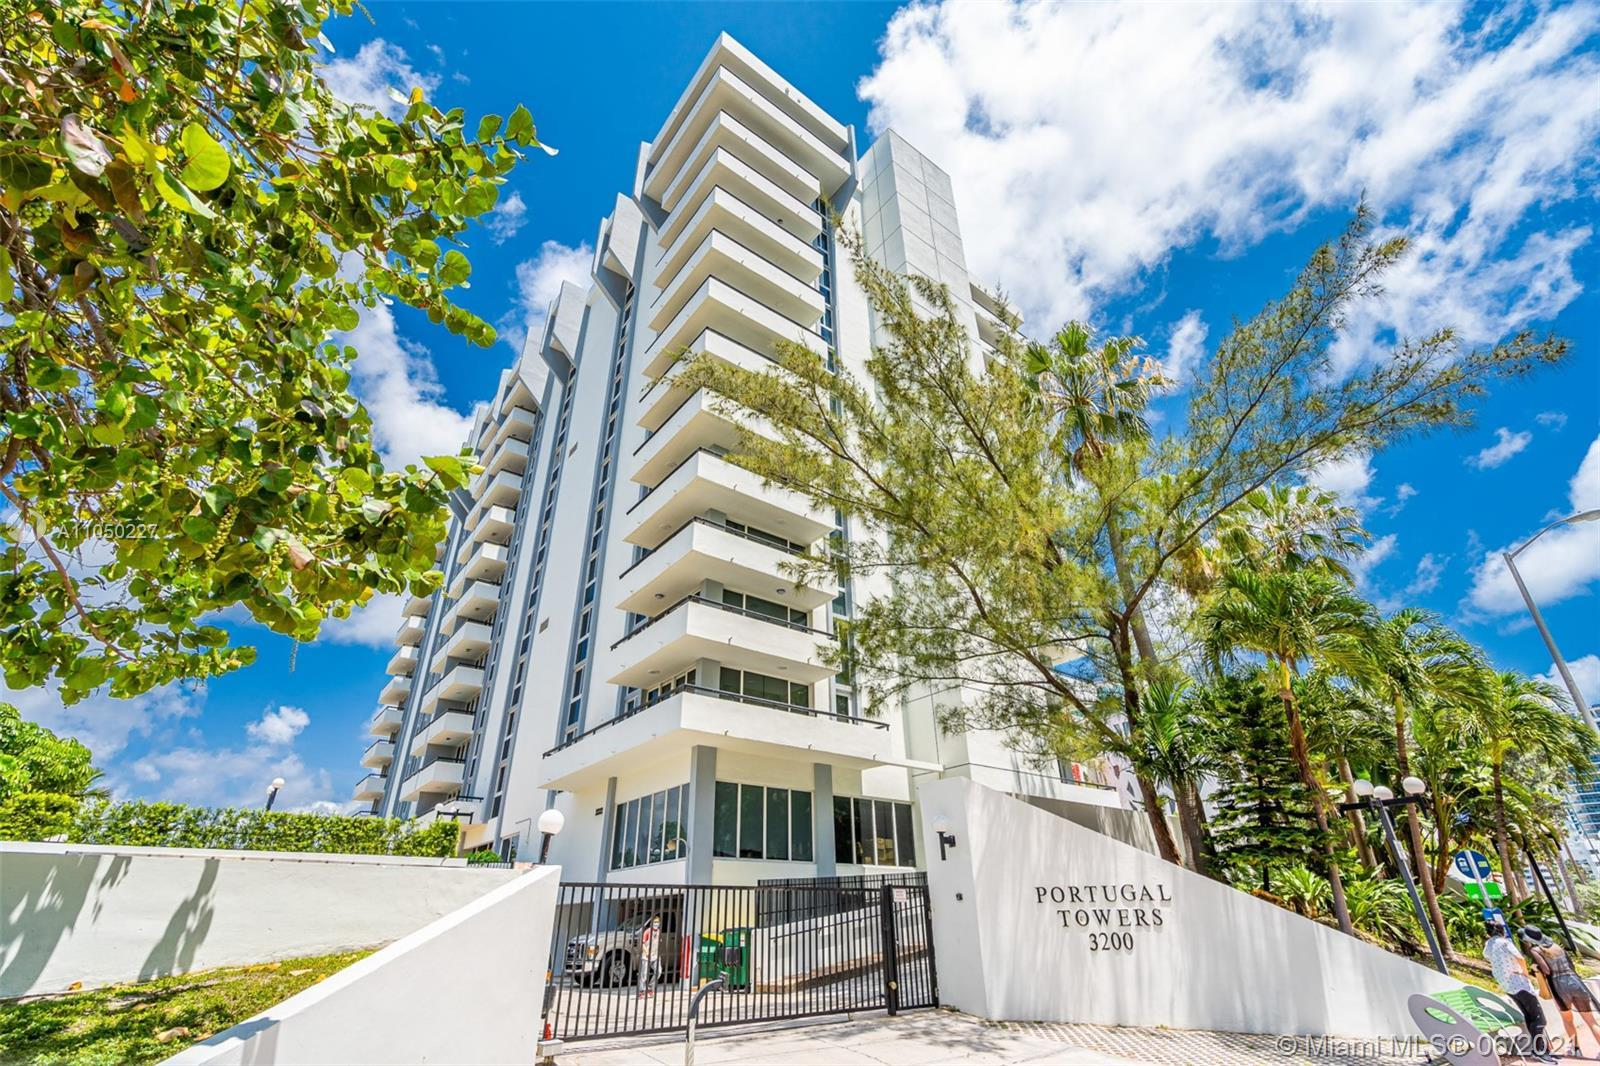 Georges Condominium in the heart of Faena District of Miami Beach. Enjoy the Downtown Miami skyline